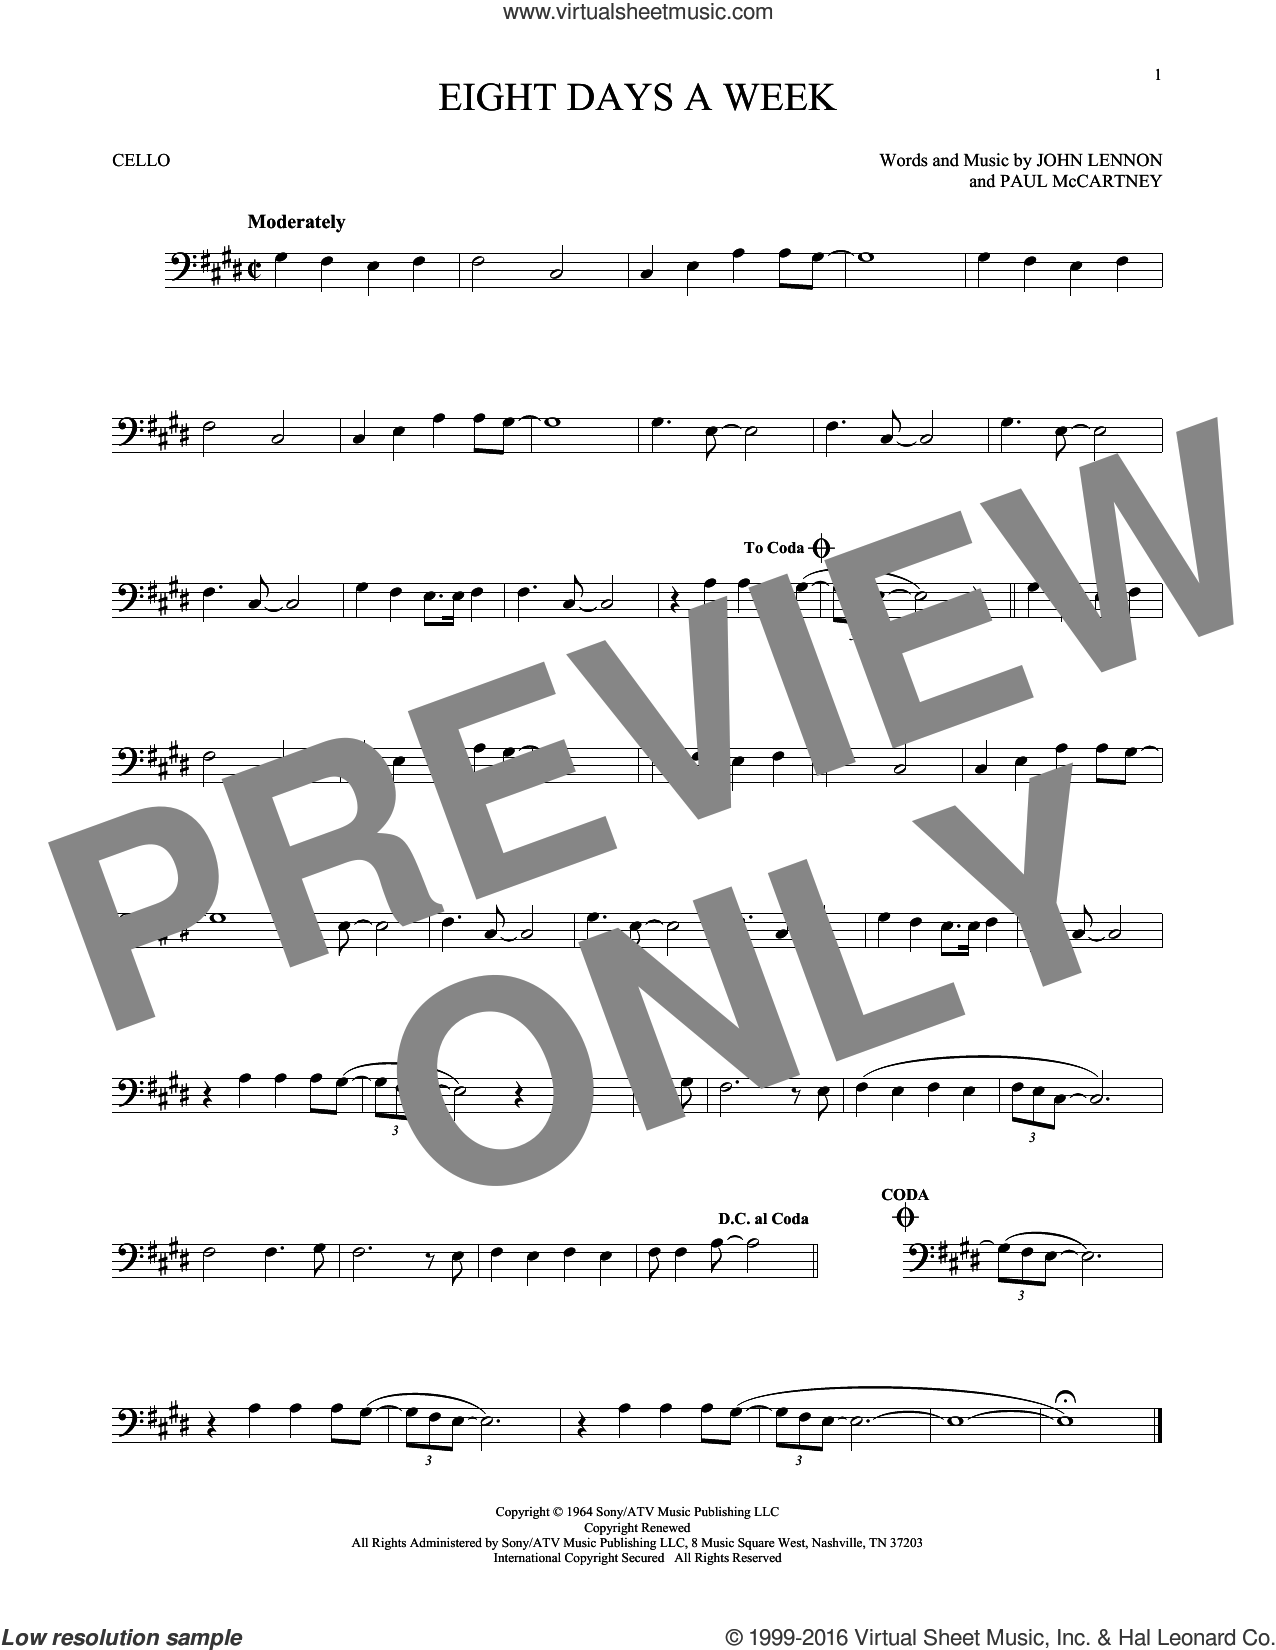 Eight Days A Week sheet music for cello solo by The Beatles, John Lennon and Paul McCartney, intermediate